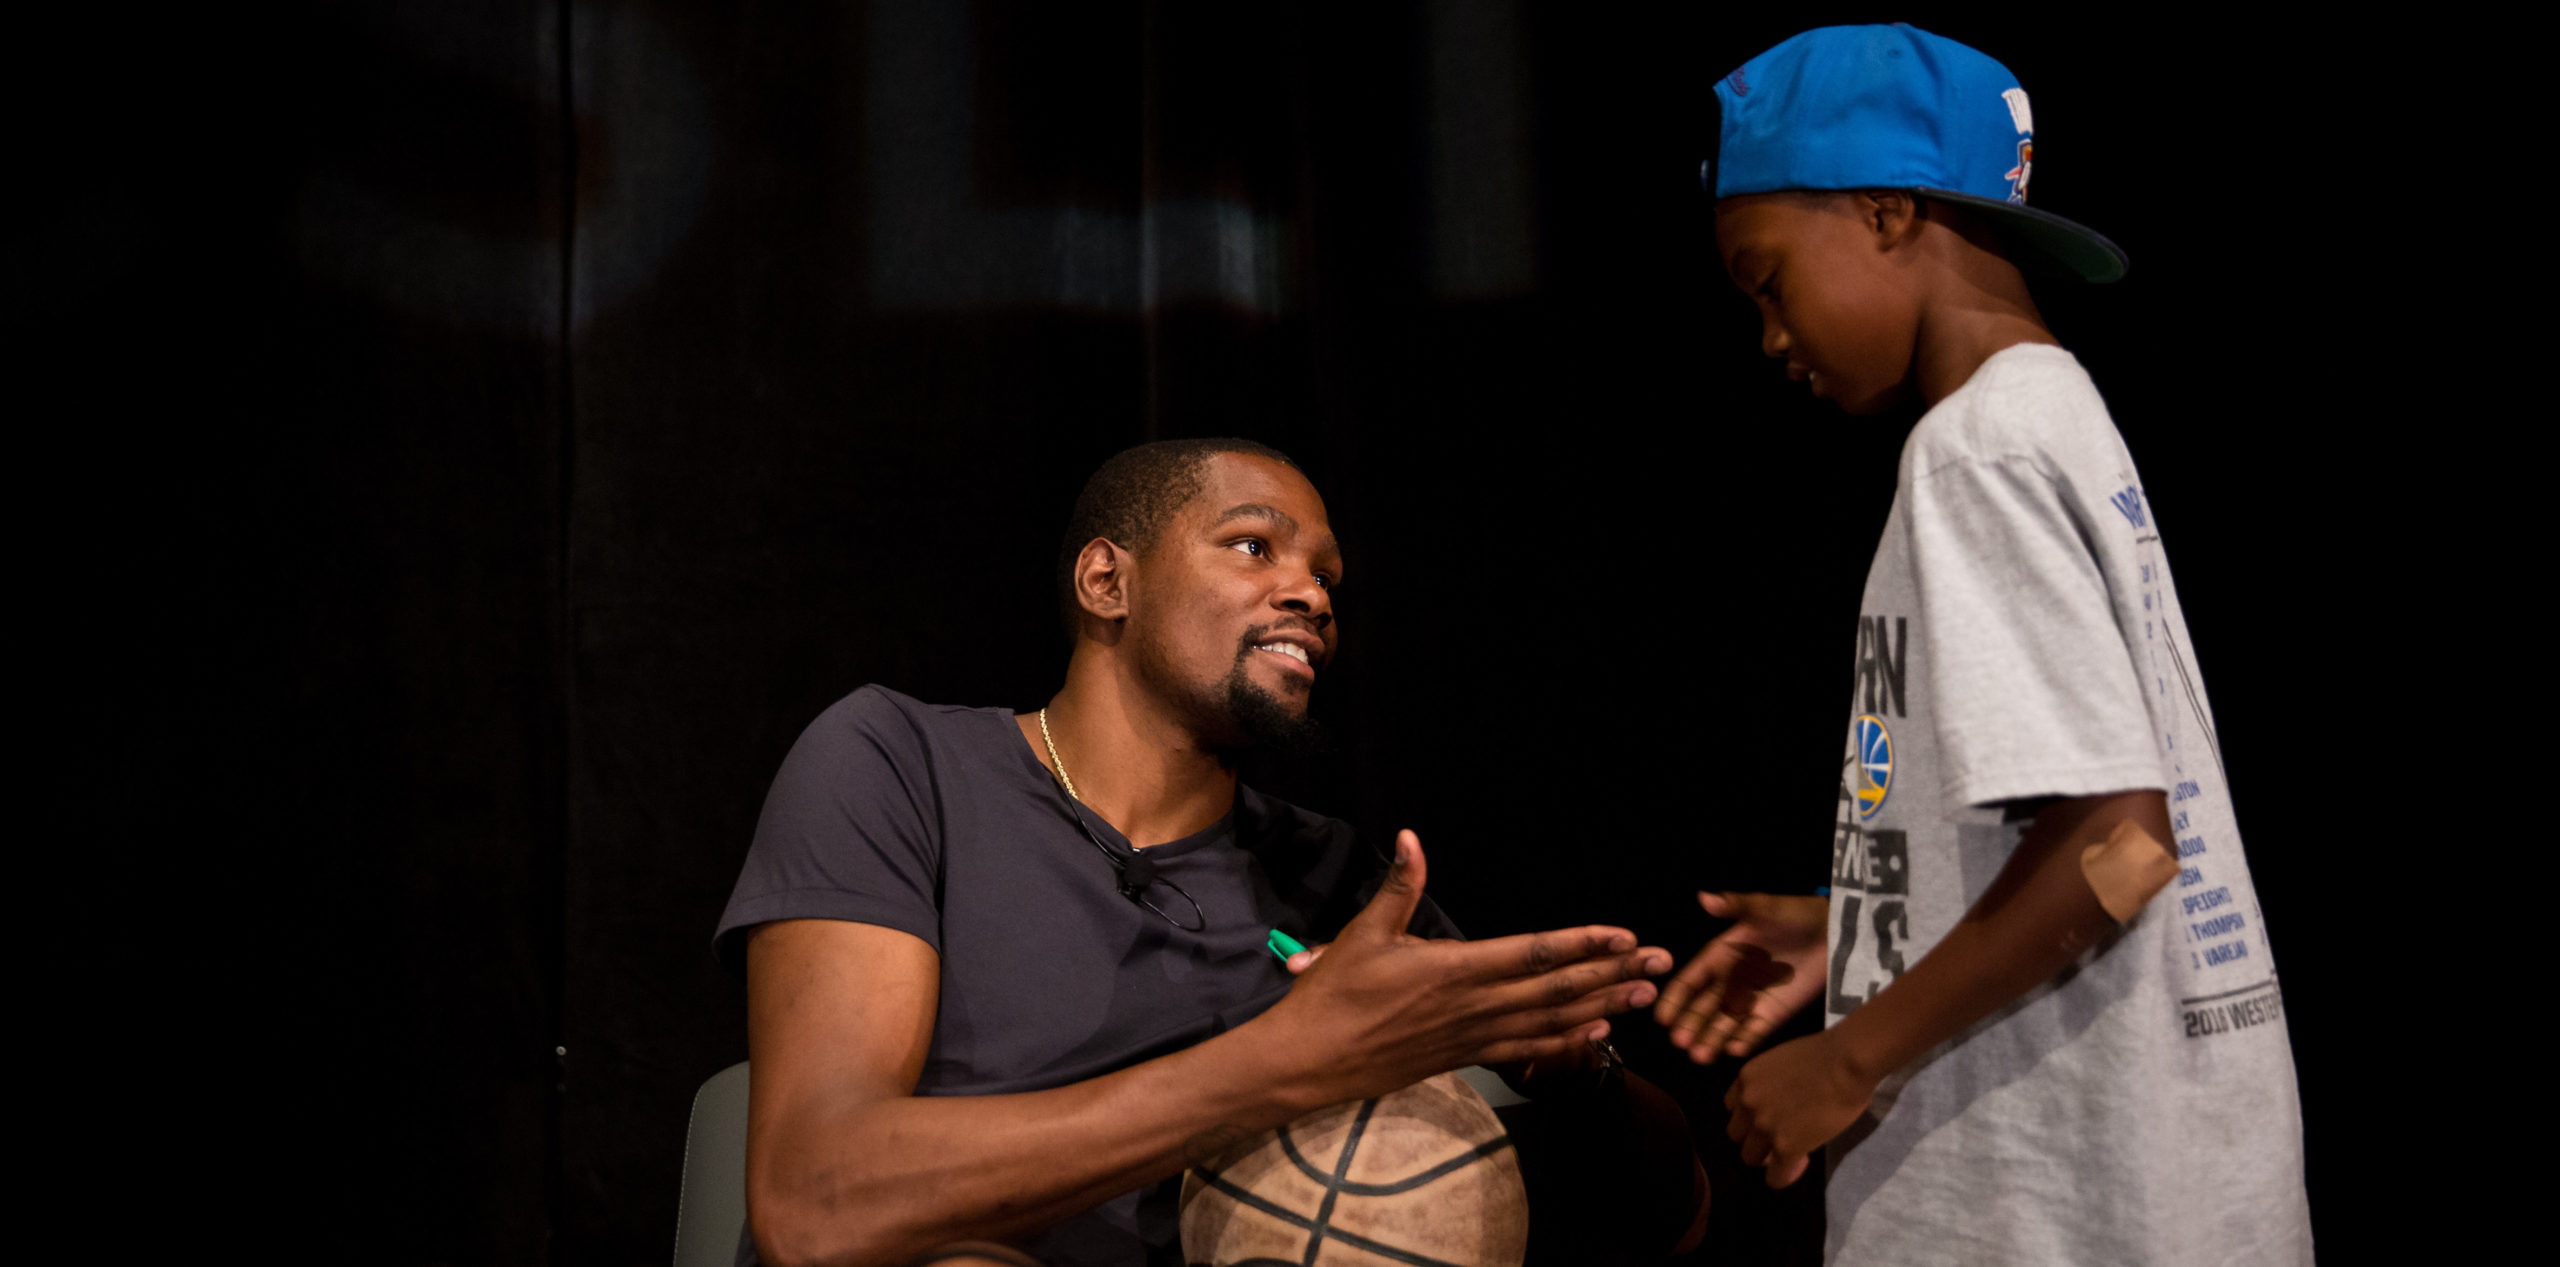 Kevin Durant Center for Sports Leadership & Innovation